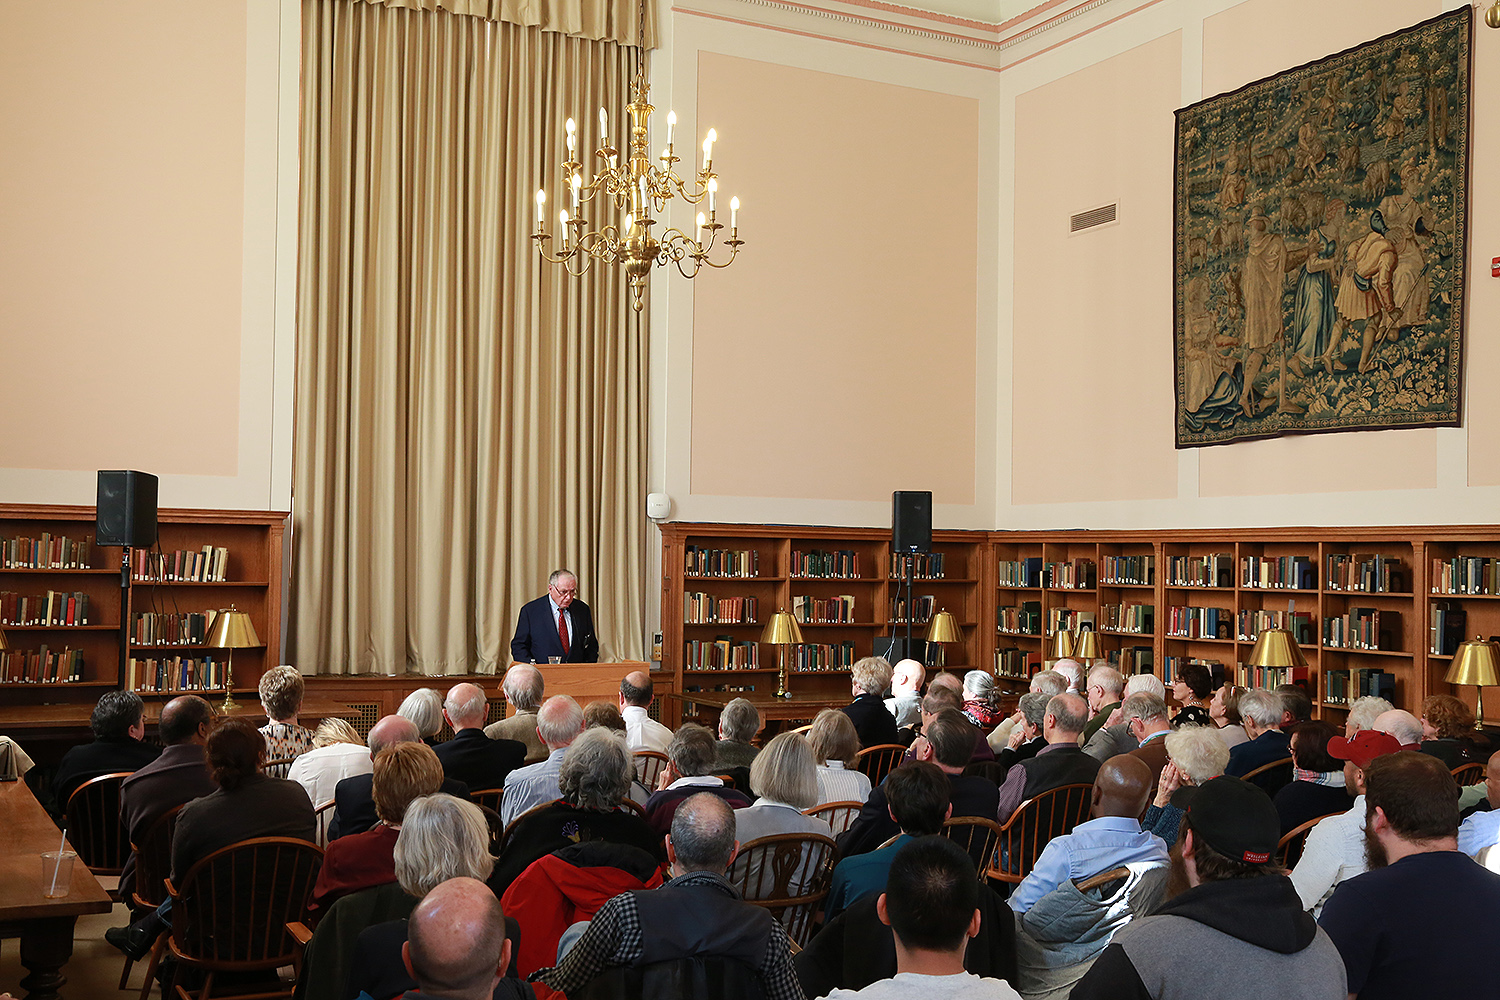 He spoke at length about the ethical obligations of educated citizens in a participatory democracy, and he took questions after. After Wesleyan, Campbell served as president of the Rockefeller Brothers Fund. He went on to serve as chairman, president, and chief executive officer of the Colonial Williamsburg Foundation, retiring in 2014 and now serving as chairman emeritus. His talk was sponsored by the Wasch Center for Retired Faculty.